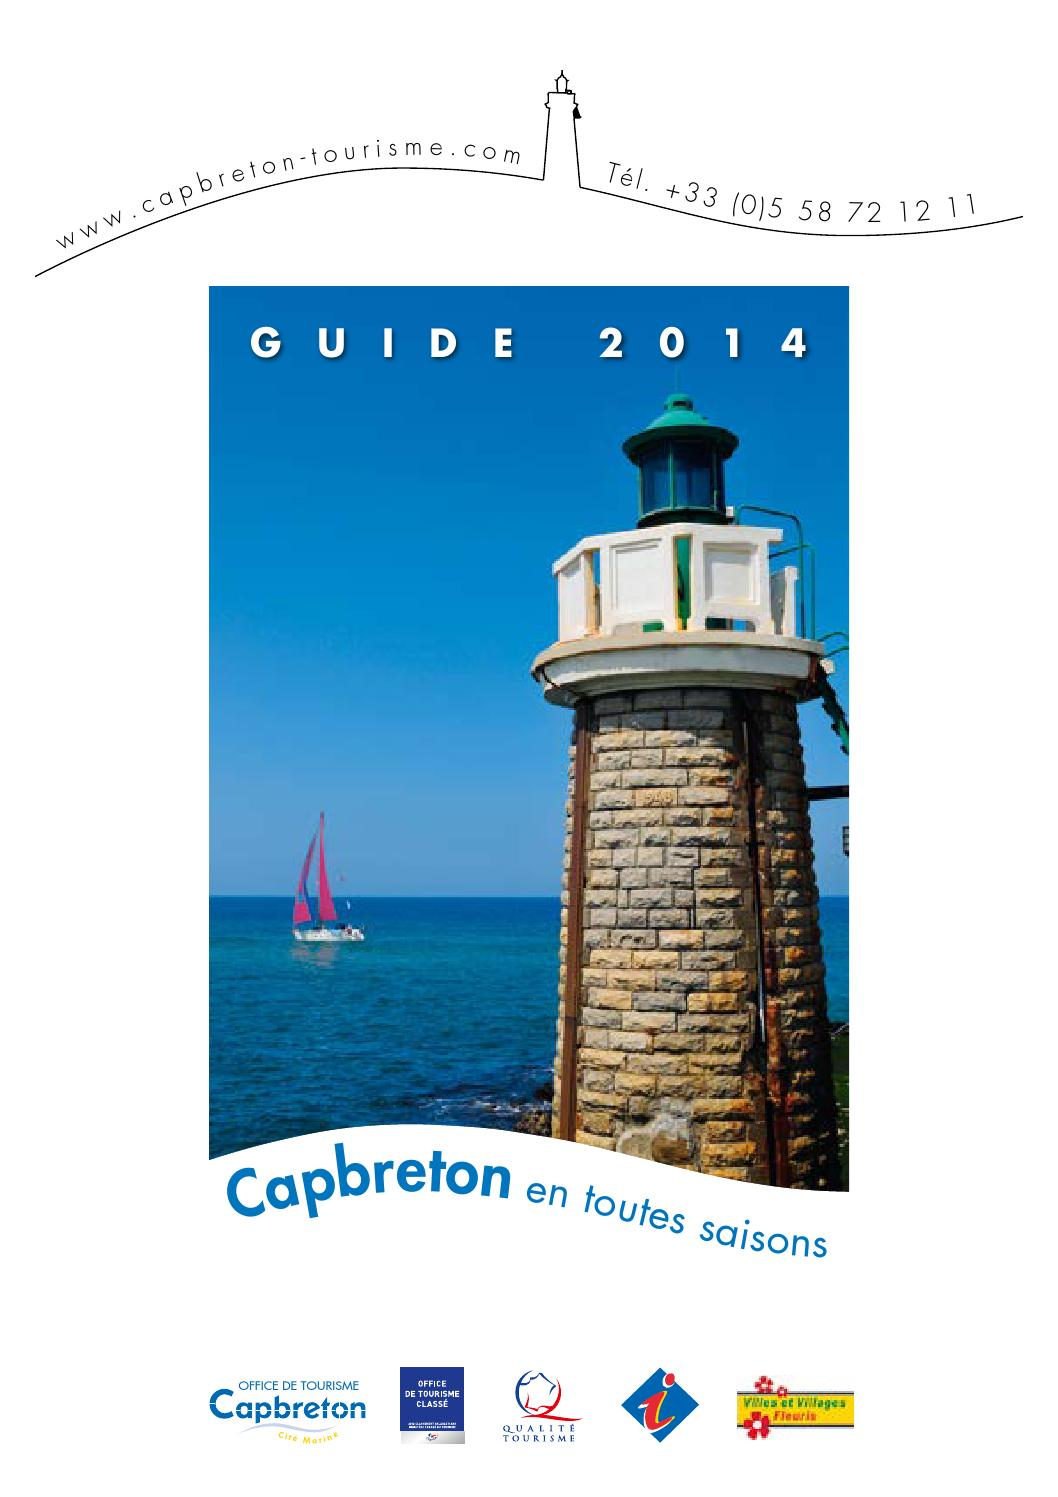 Ot capbreton complet2014 by office de tourisme de capbreton issuu - Office de tourisme cap breton ...